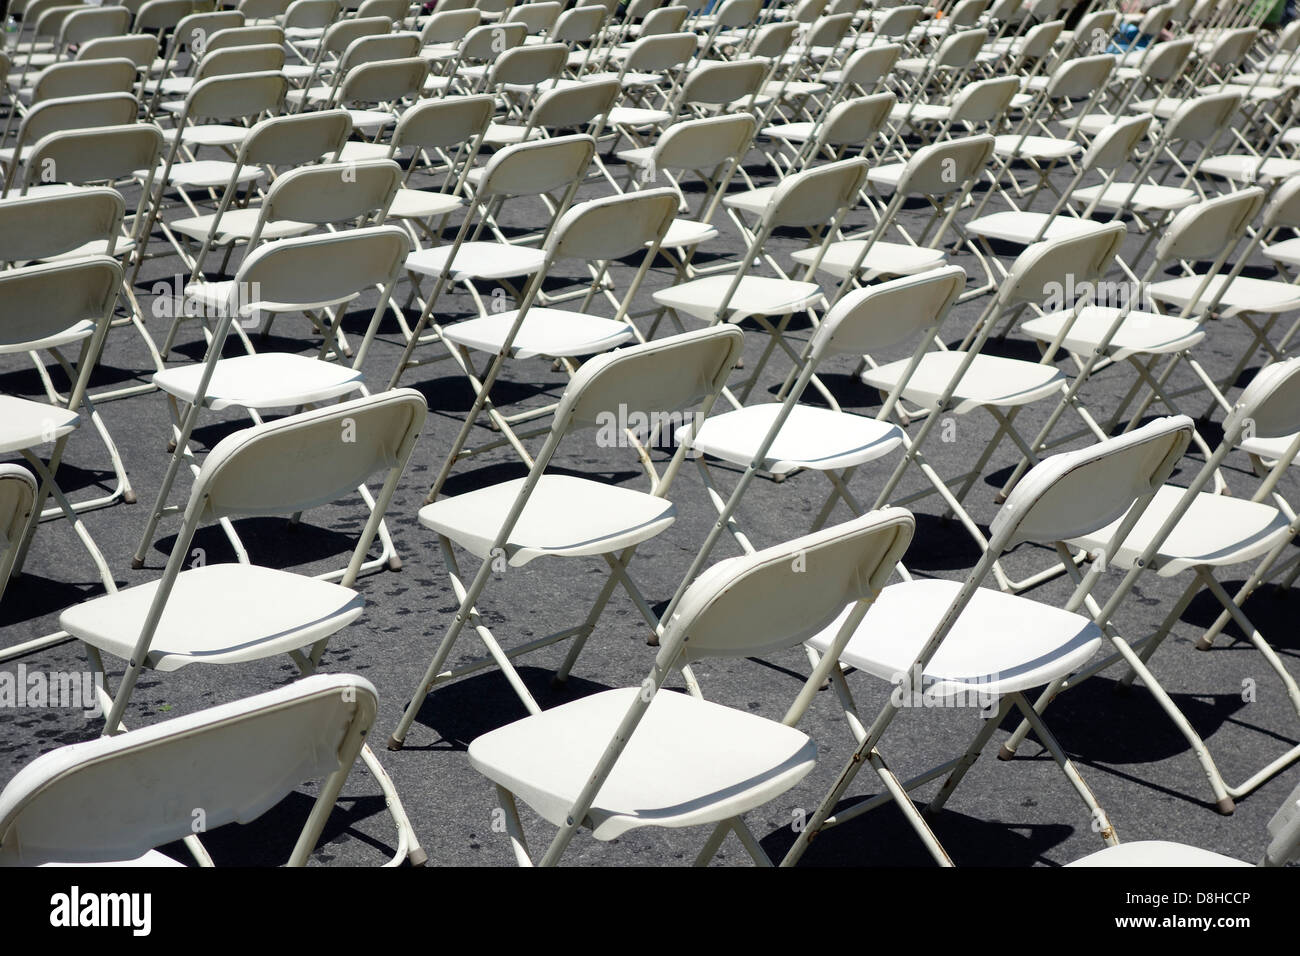 White Folding Chairs High Resolution Stock Photography And Images Alamy